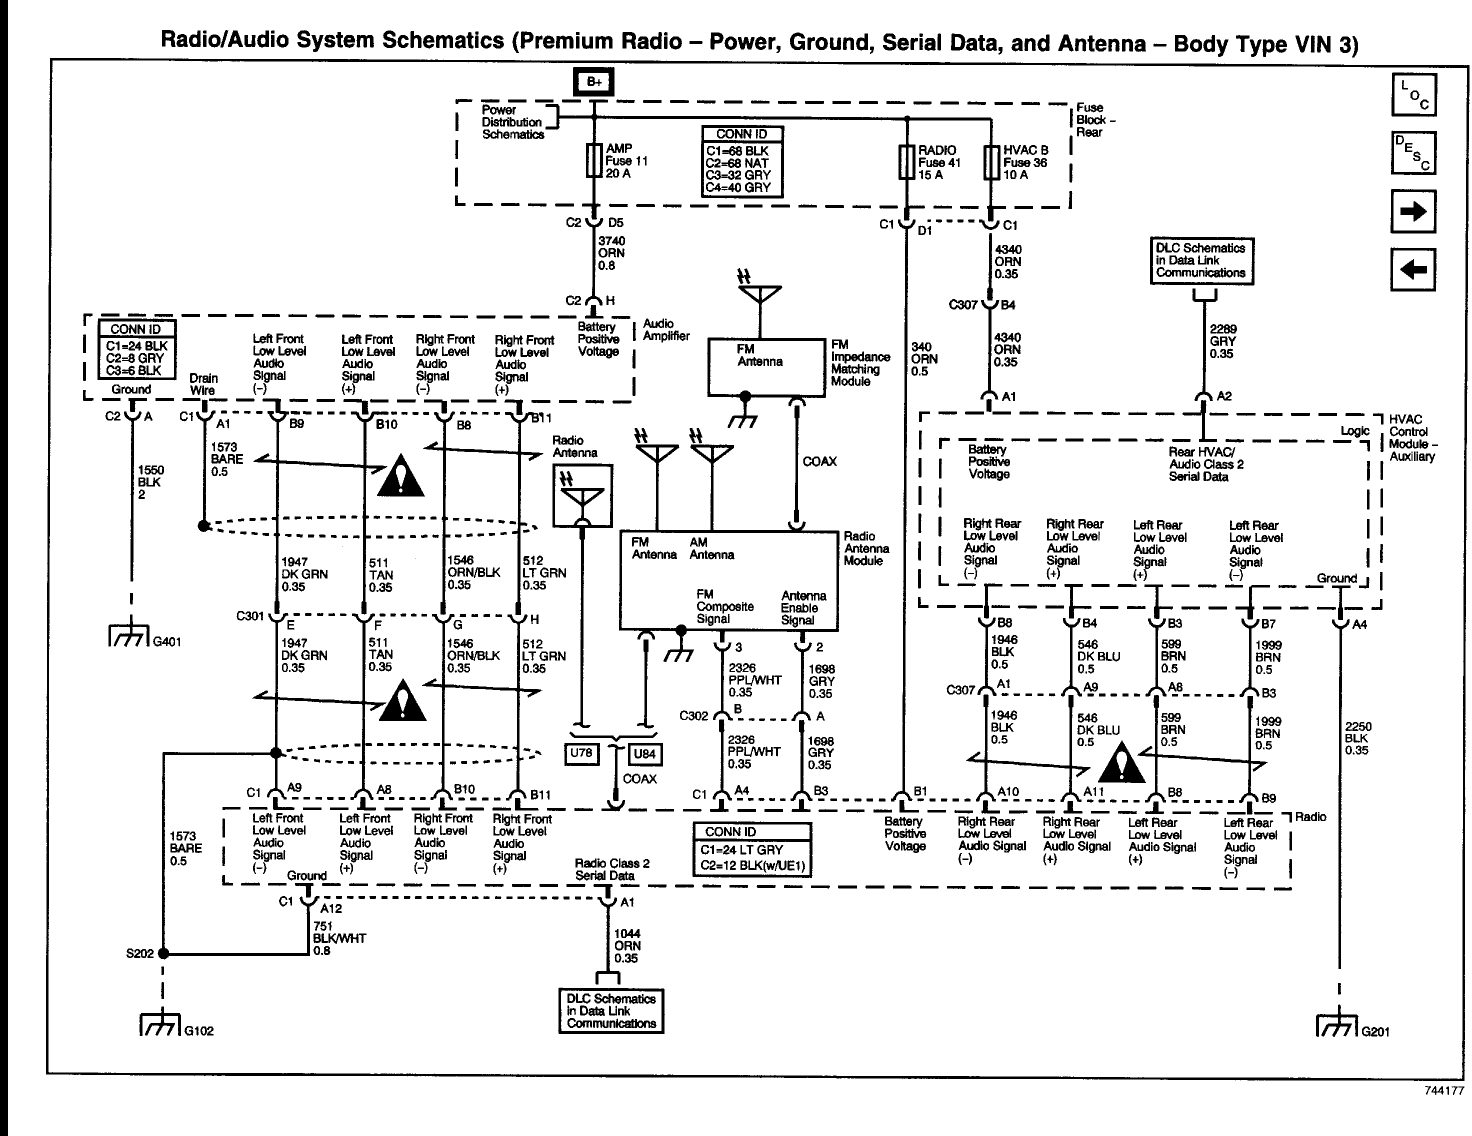 2008 gmc radio wiring diagram 2004 gmc sierra radio wiring diagram | free wiring diagram 2008 gmc radio wire diagram #1